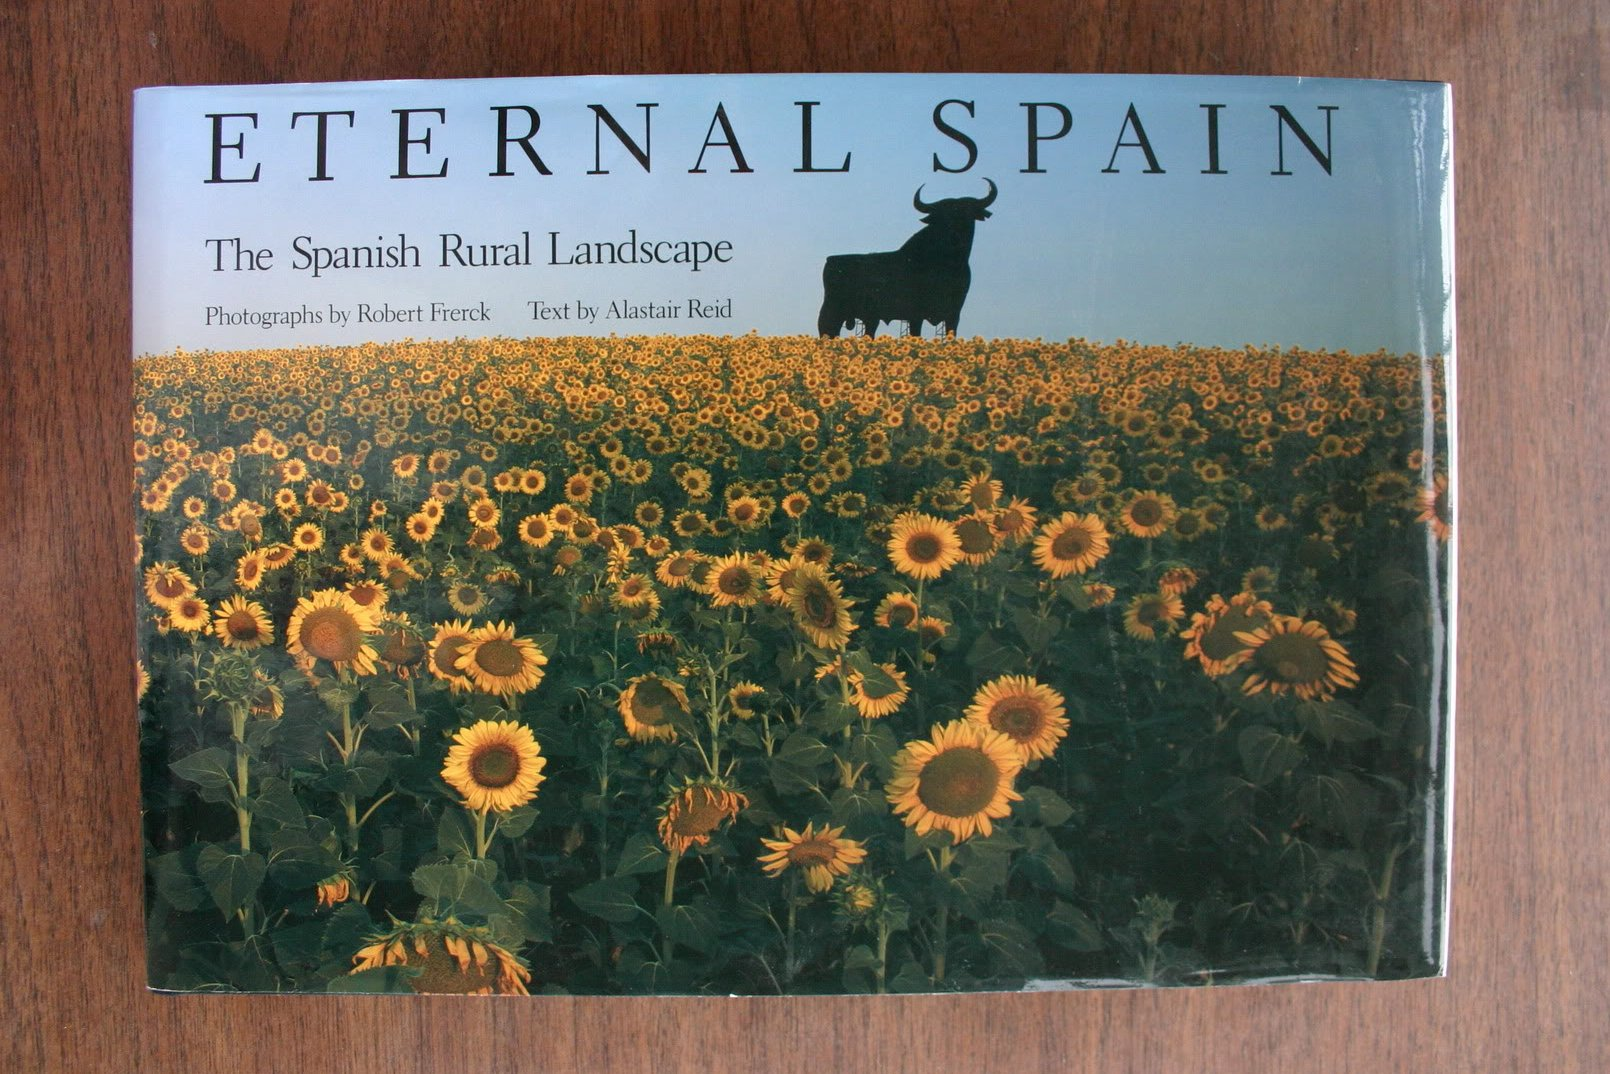 Eternal Spain: The Spanish Rural Landscape